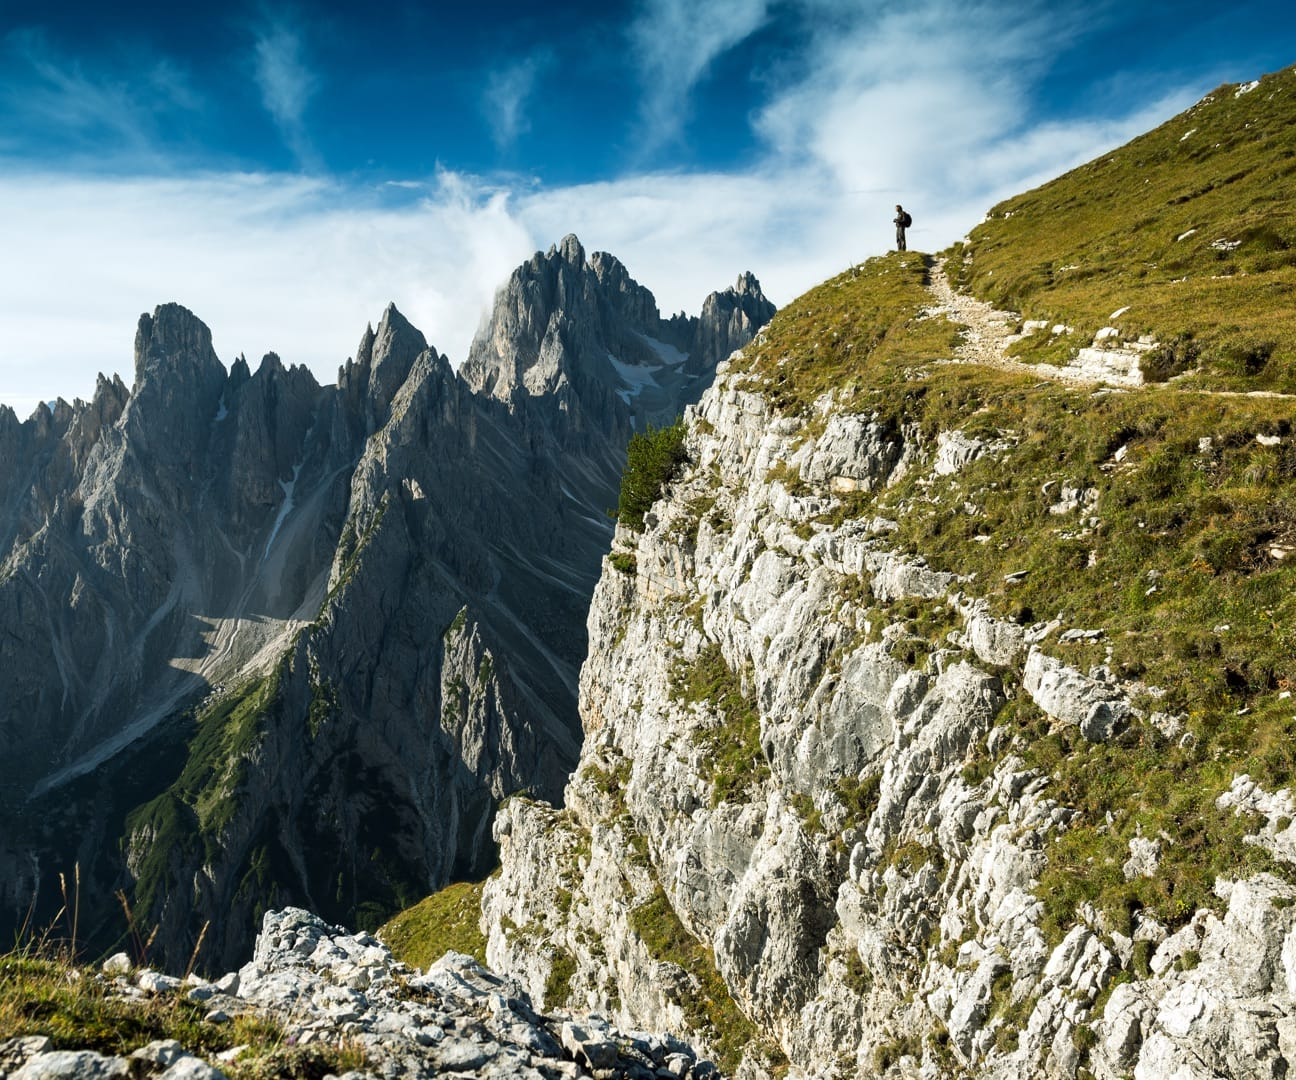 Hiking experiences in the Dolomites